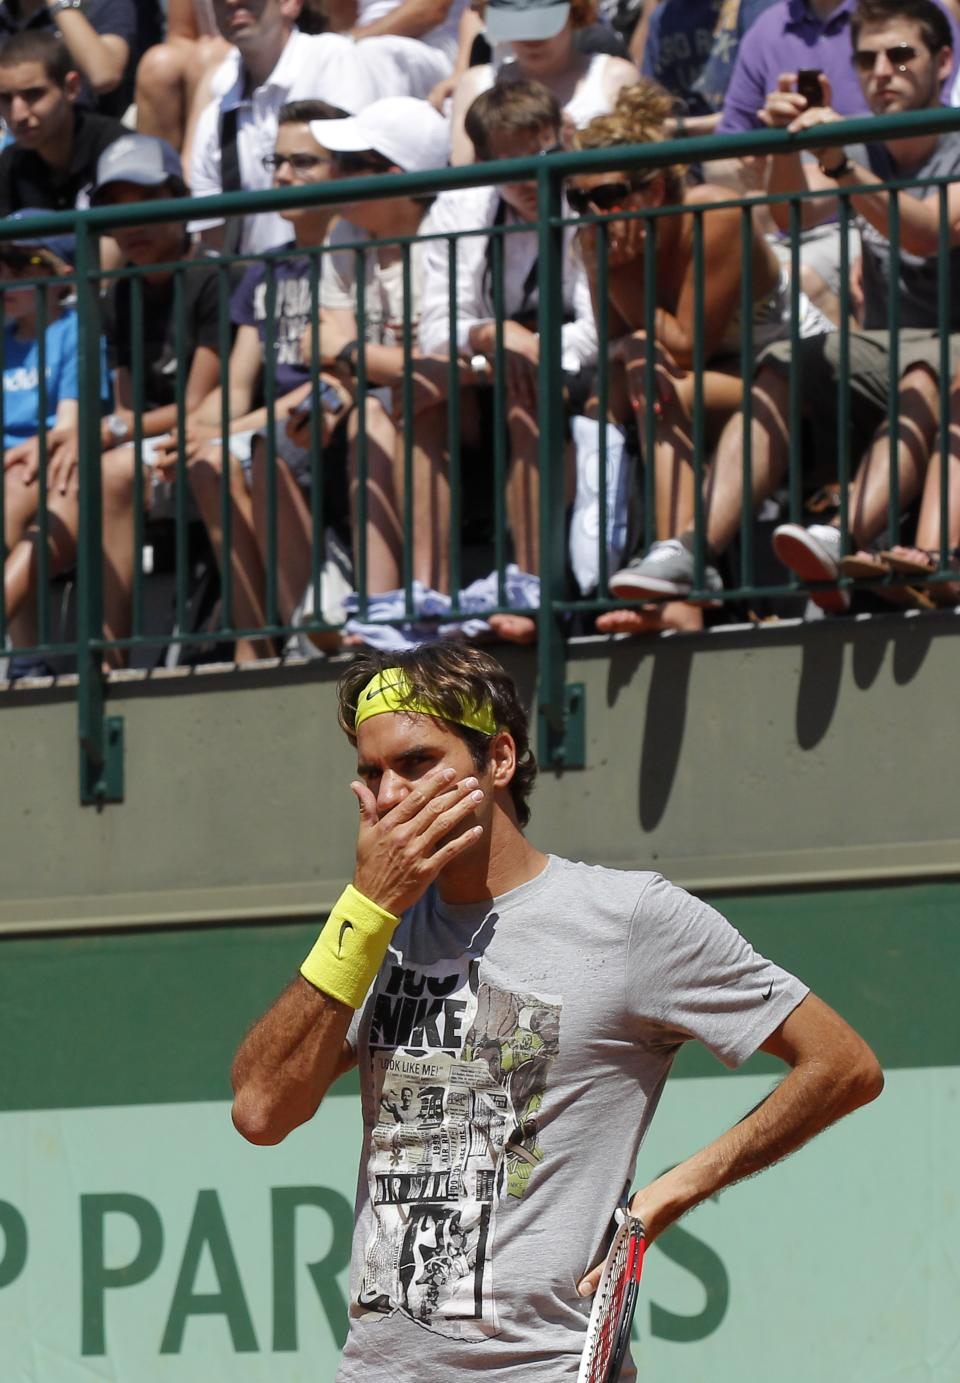 Switzerland's Roger Federer reacts during a training session for the French Open tennis tournament at the Roland Garros stadium in Paris, Saturday, May, 26, 2012.  (AP Photo/Michel Euler)